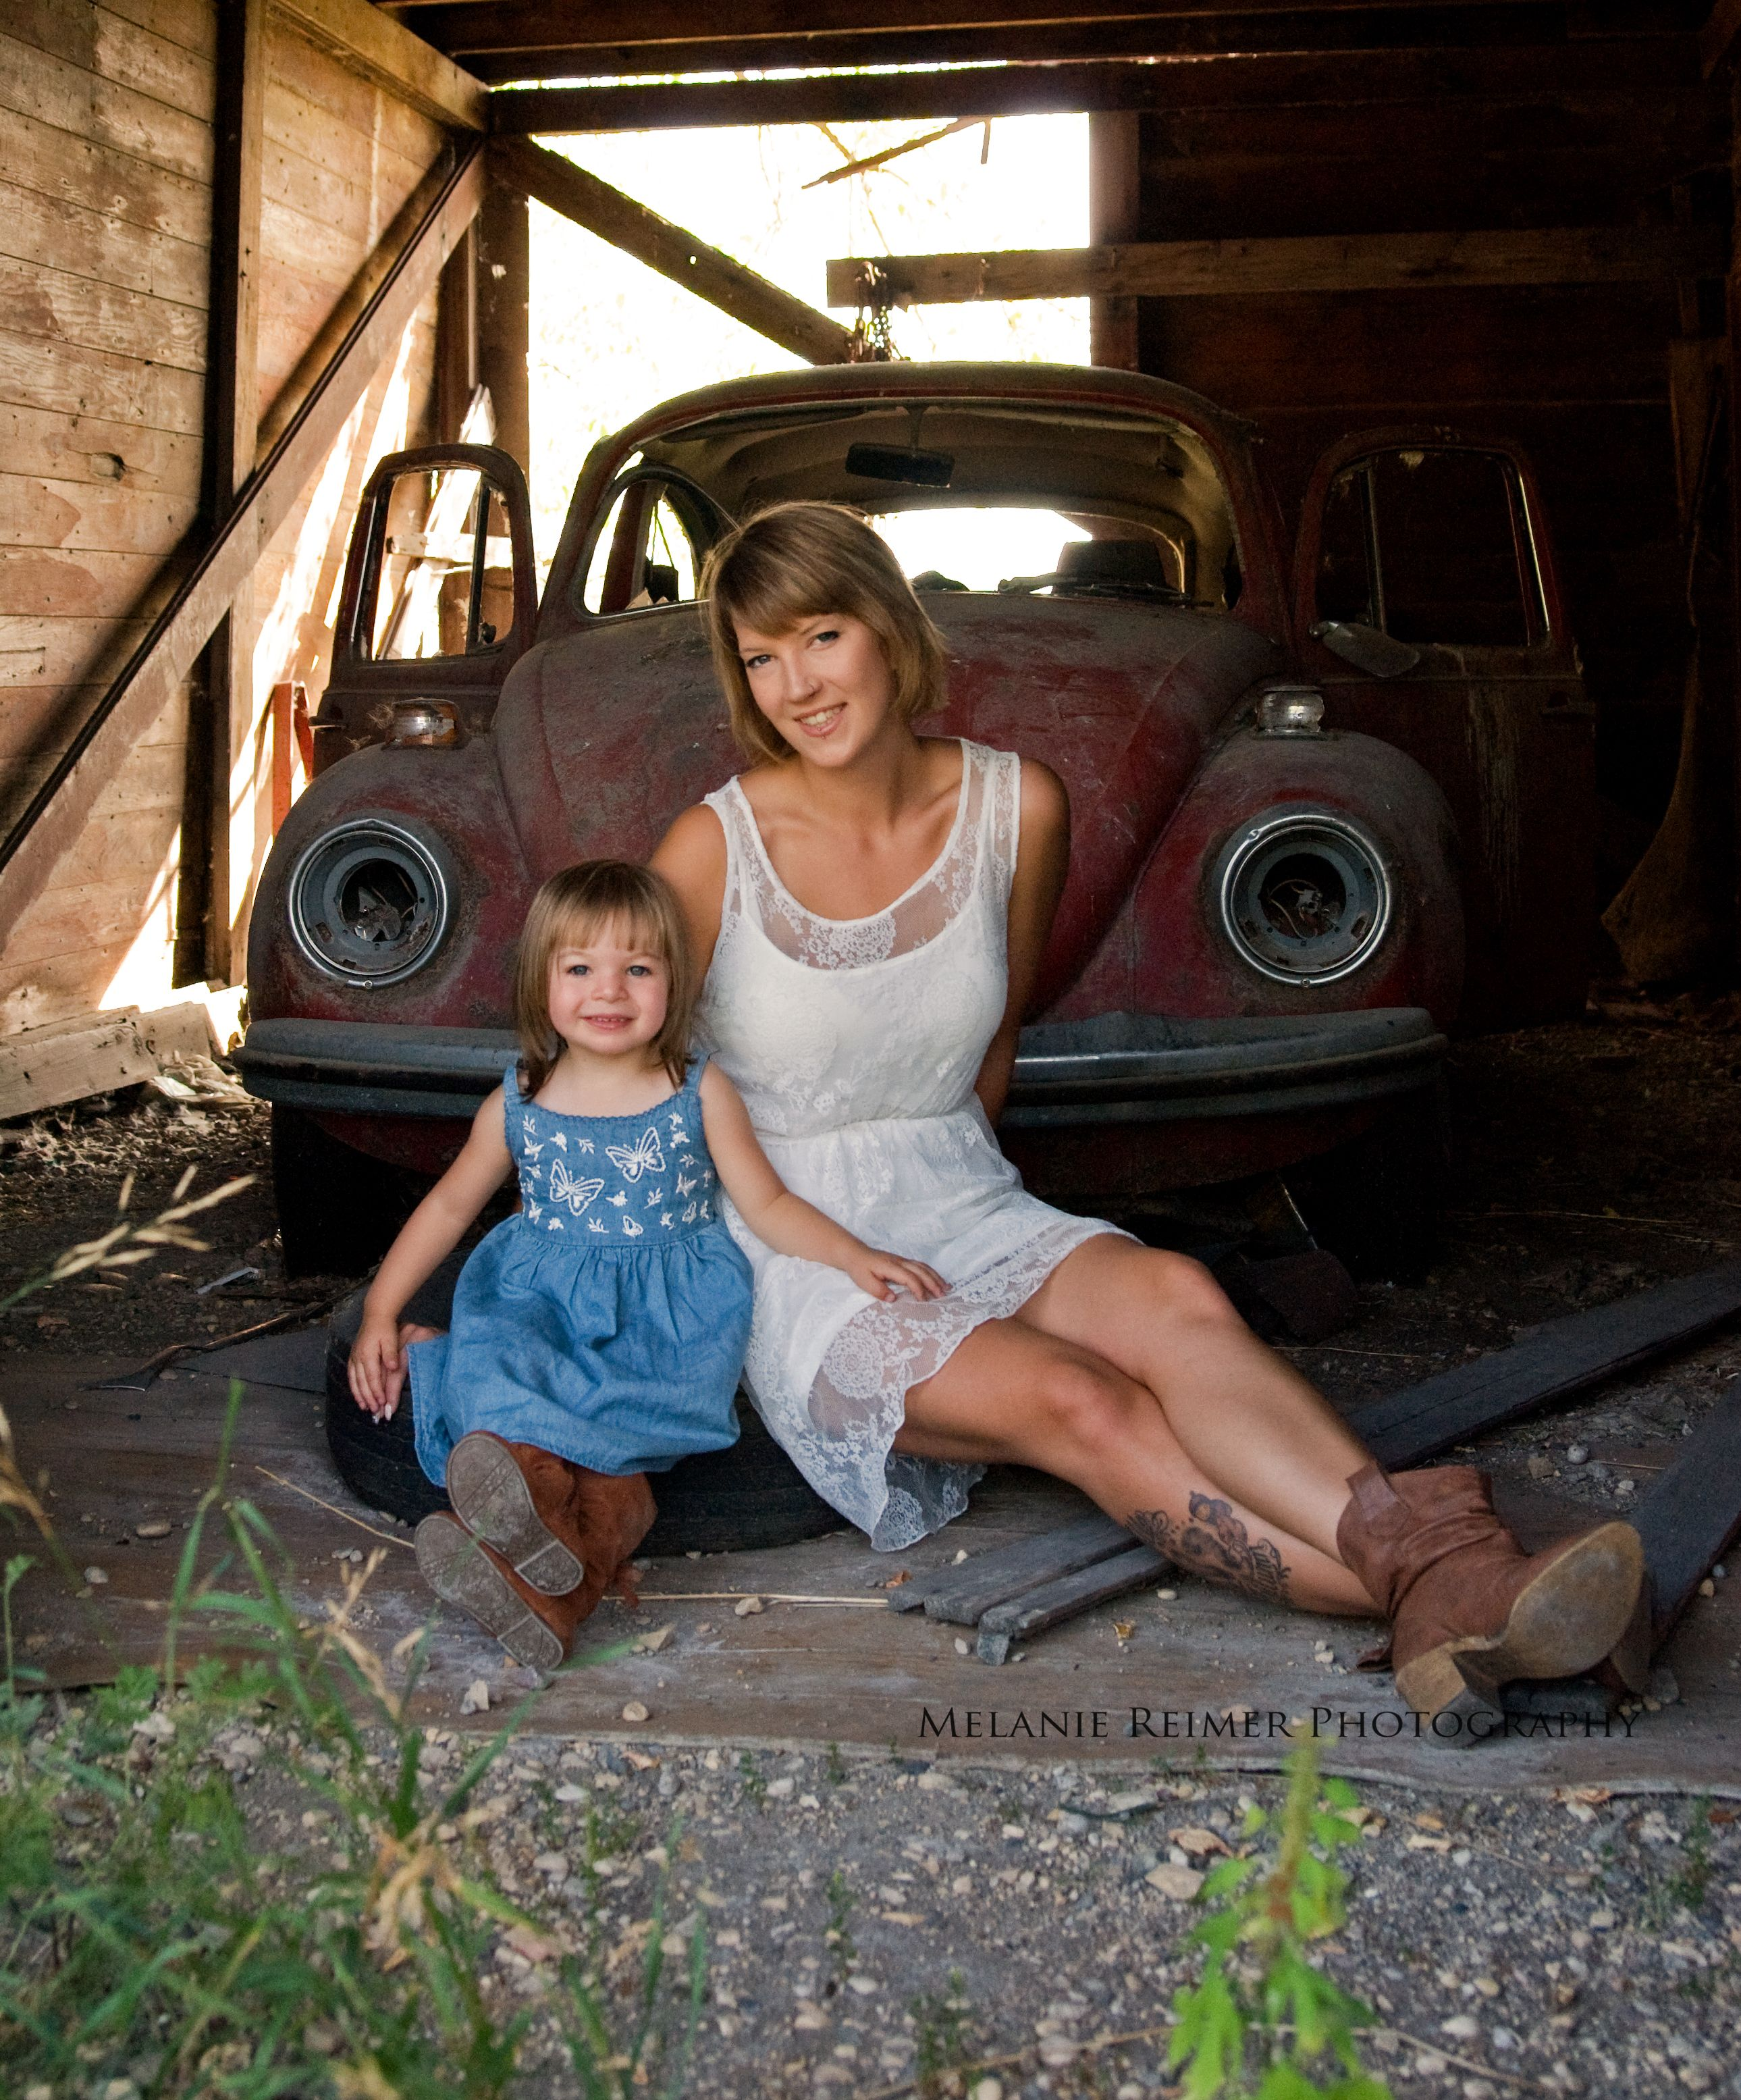 Melanie Reimer Photography   Outdoor summer vintage themed mom and me session. Old car, cowboy boots.